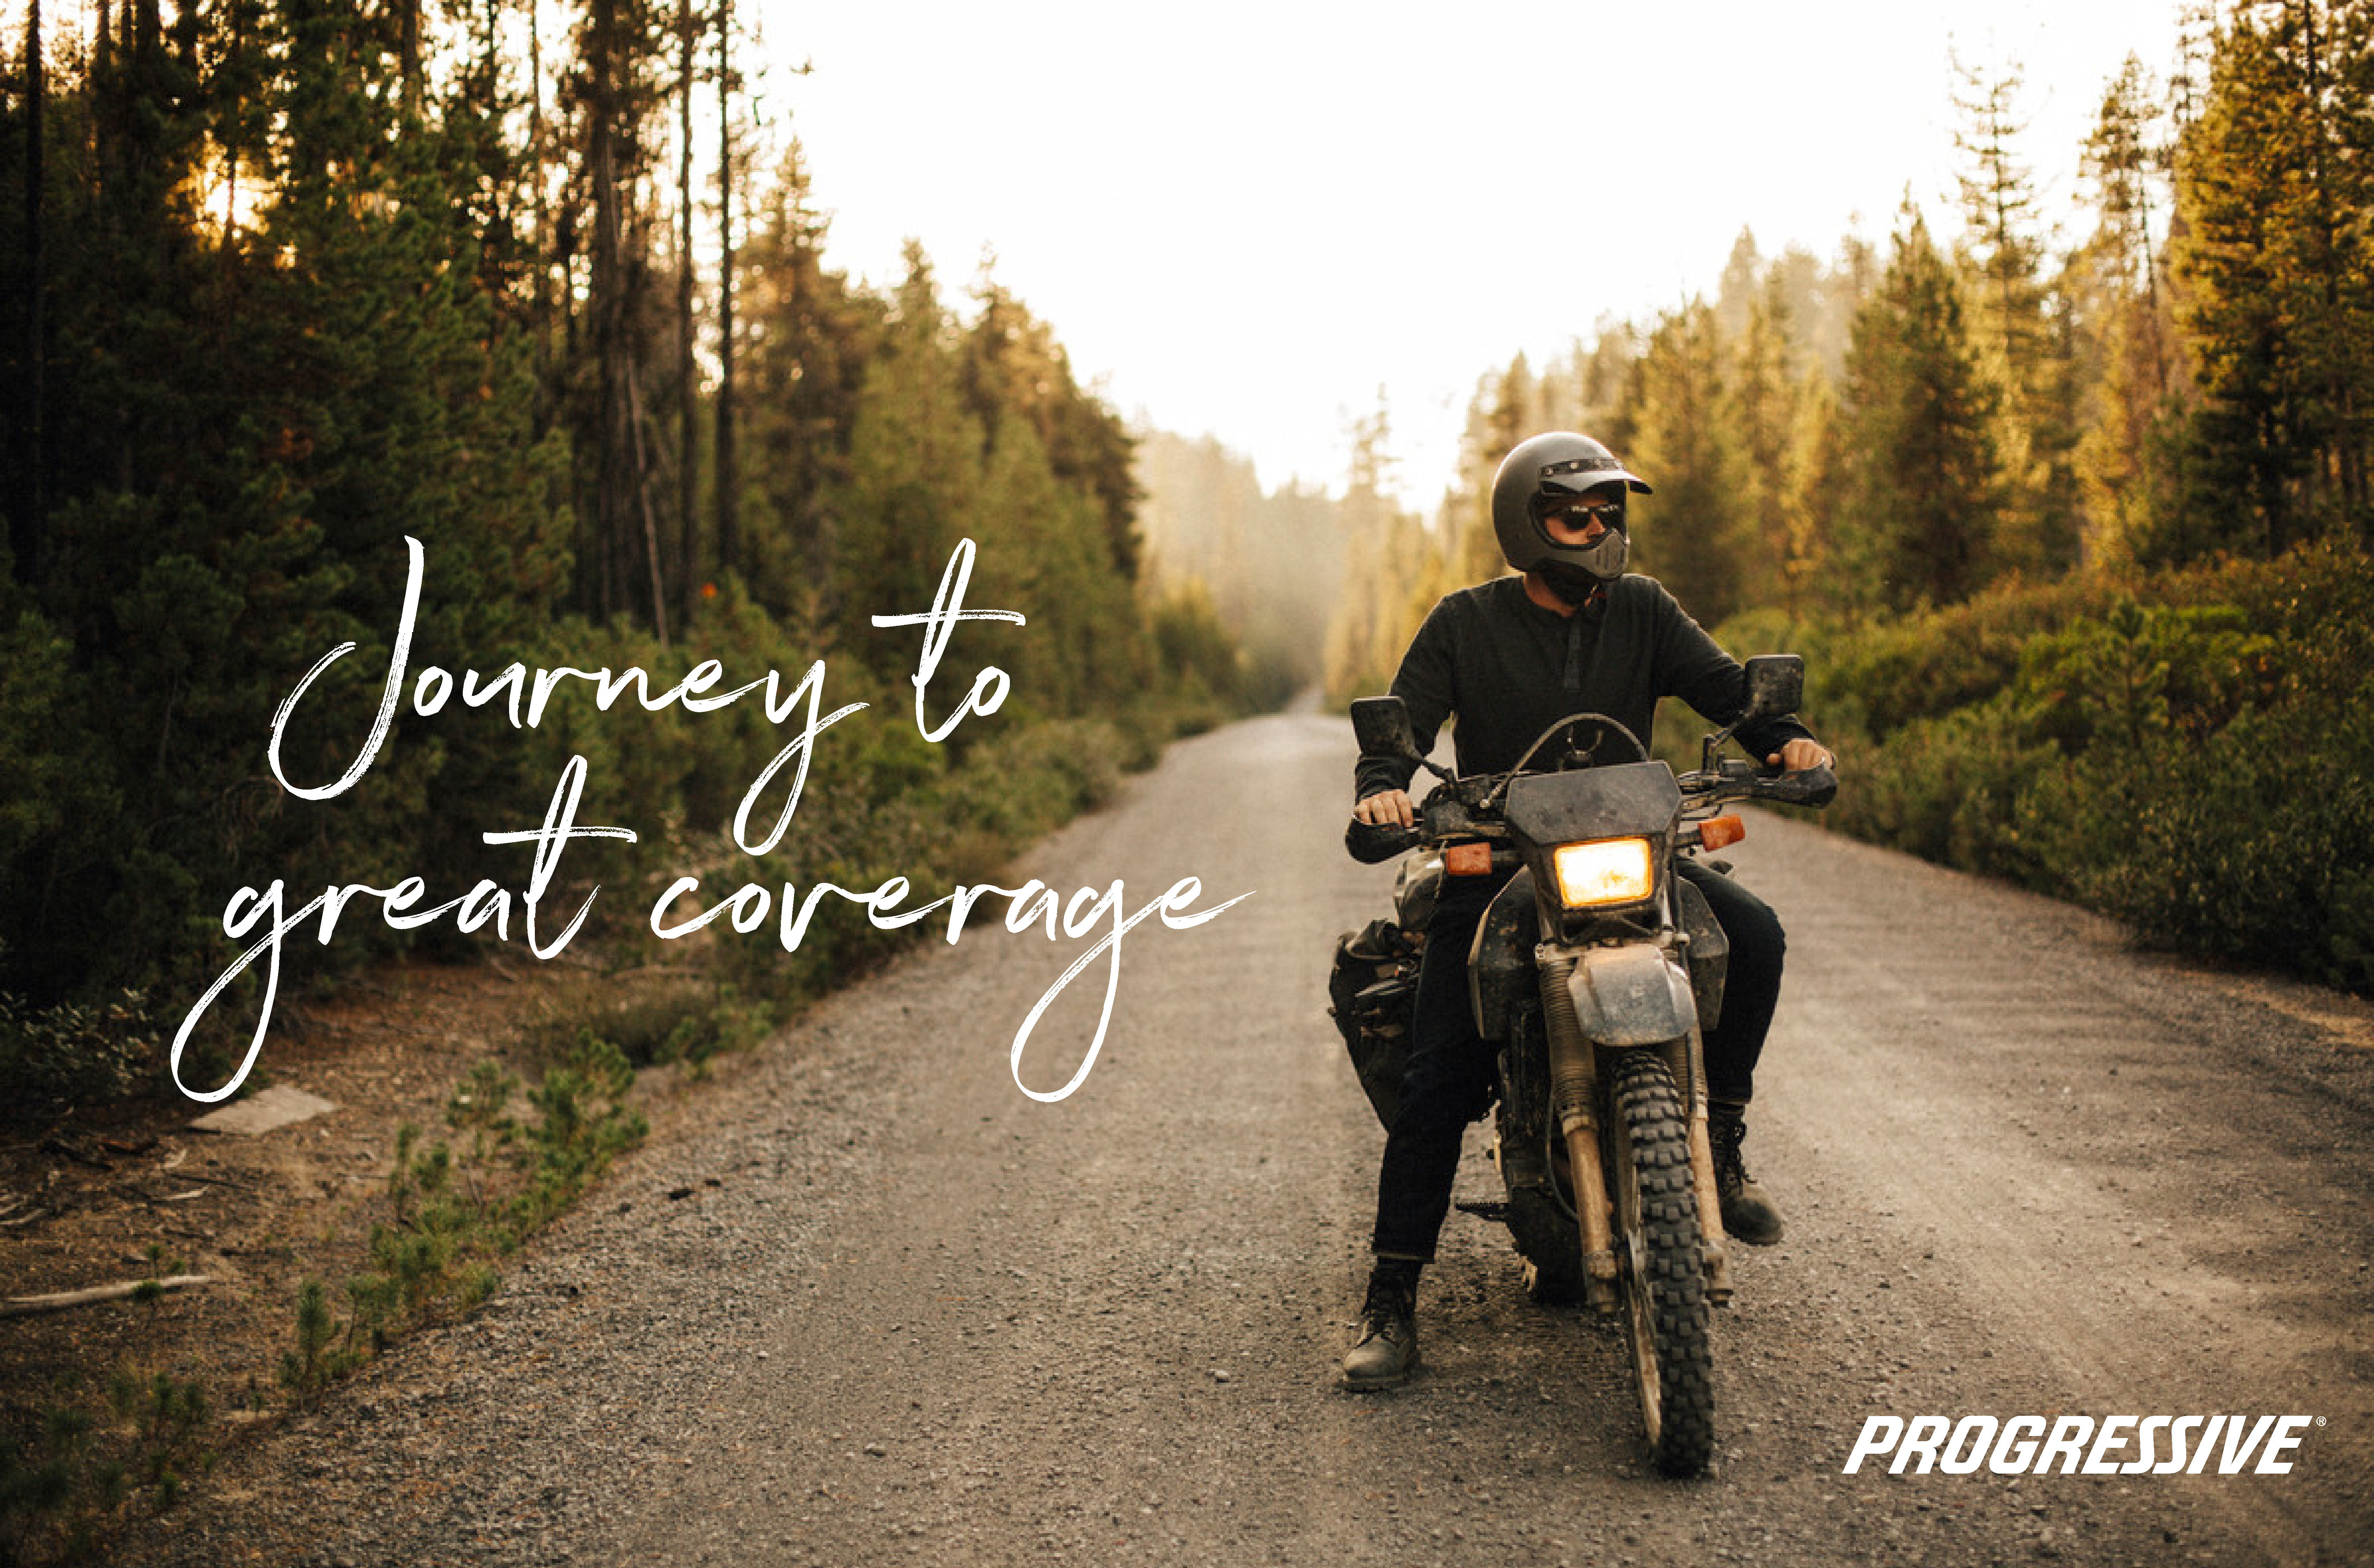 The open road is calling! Get a quote on your motorcycle